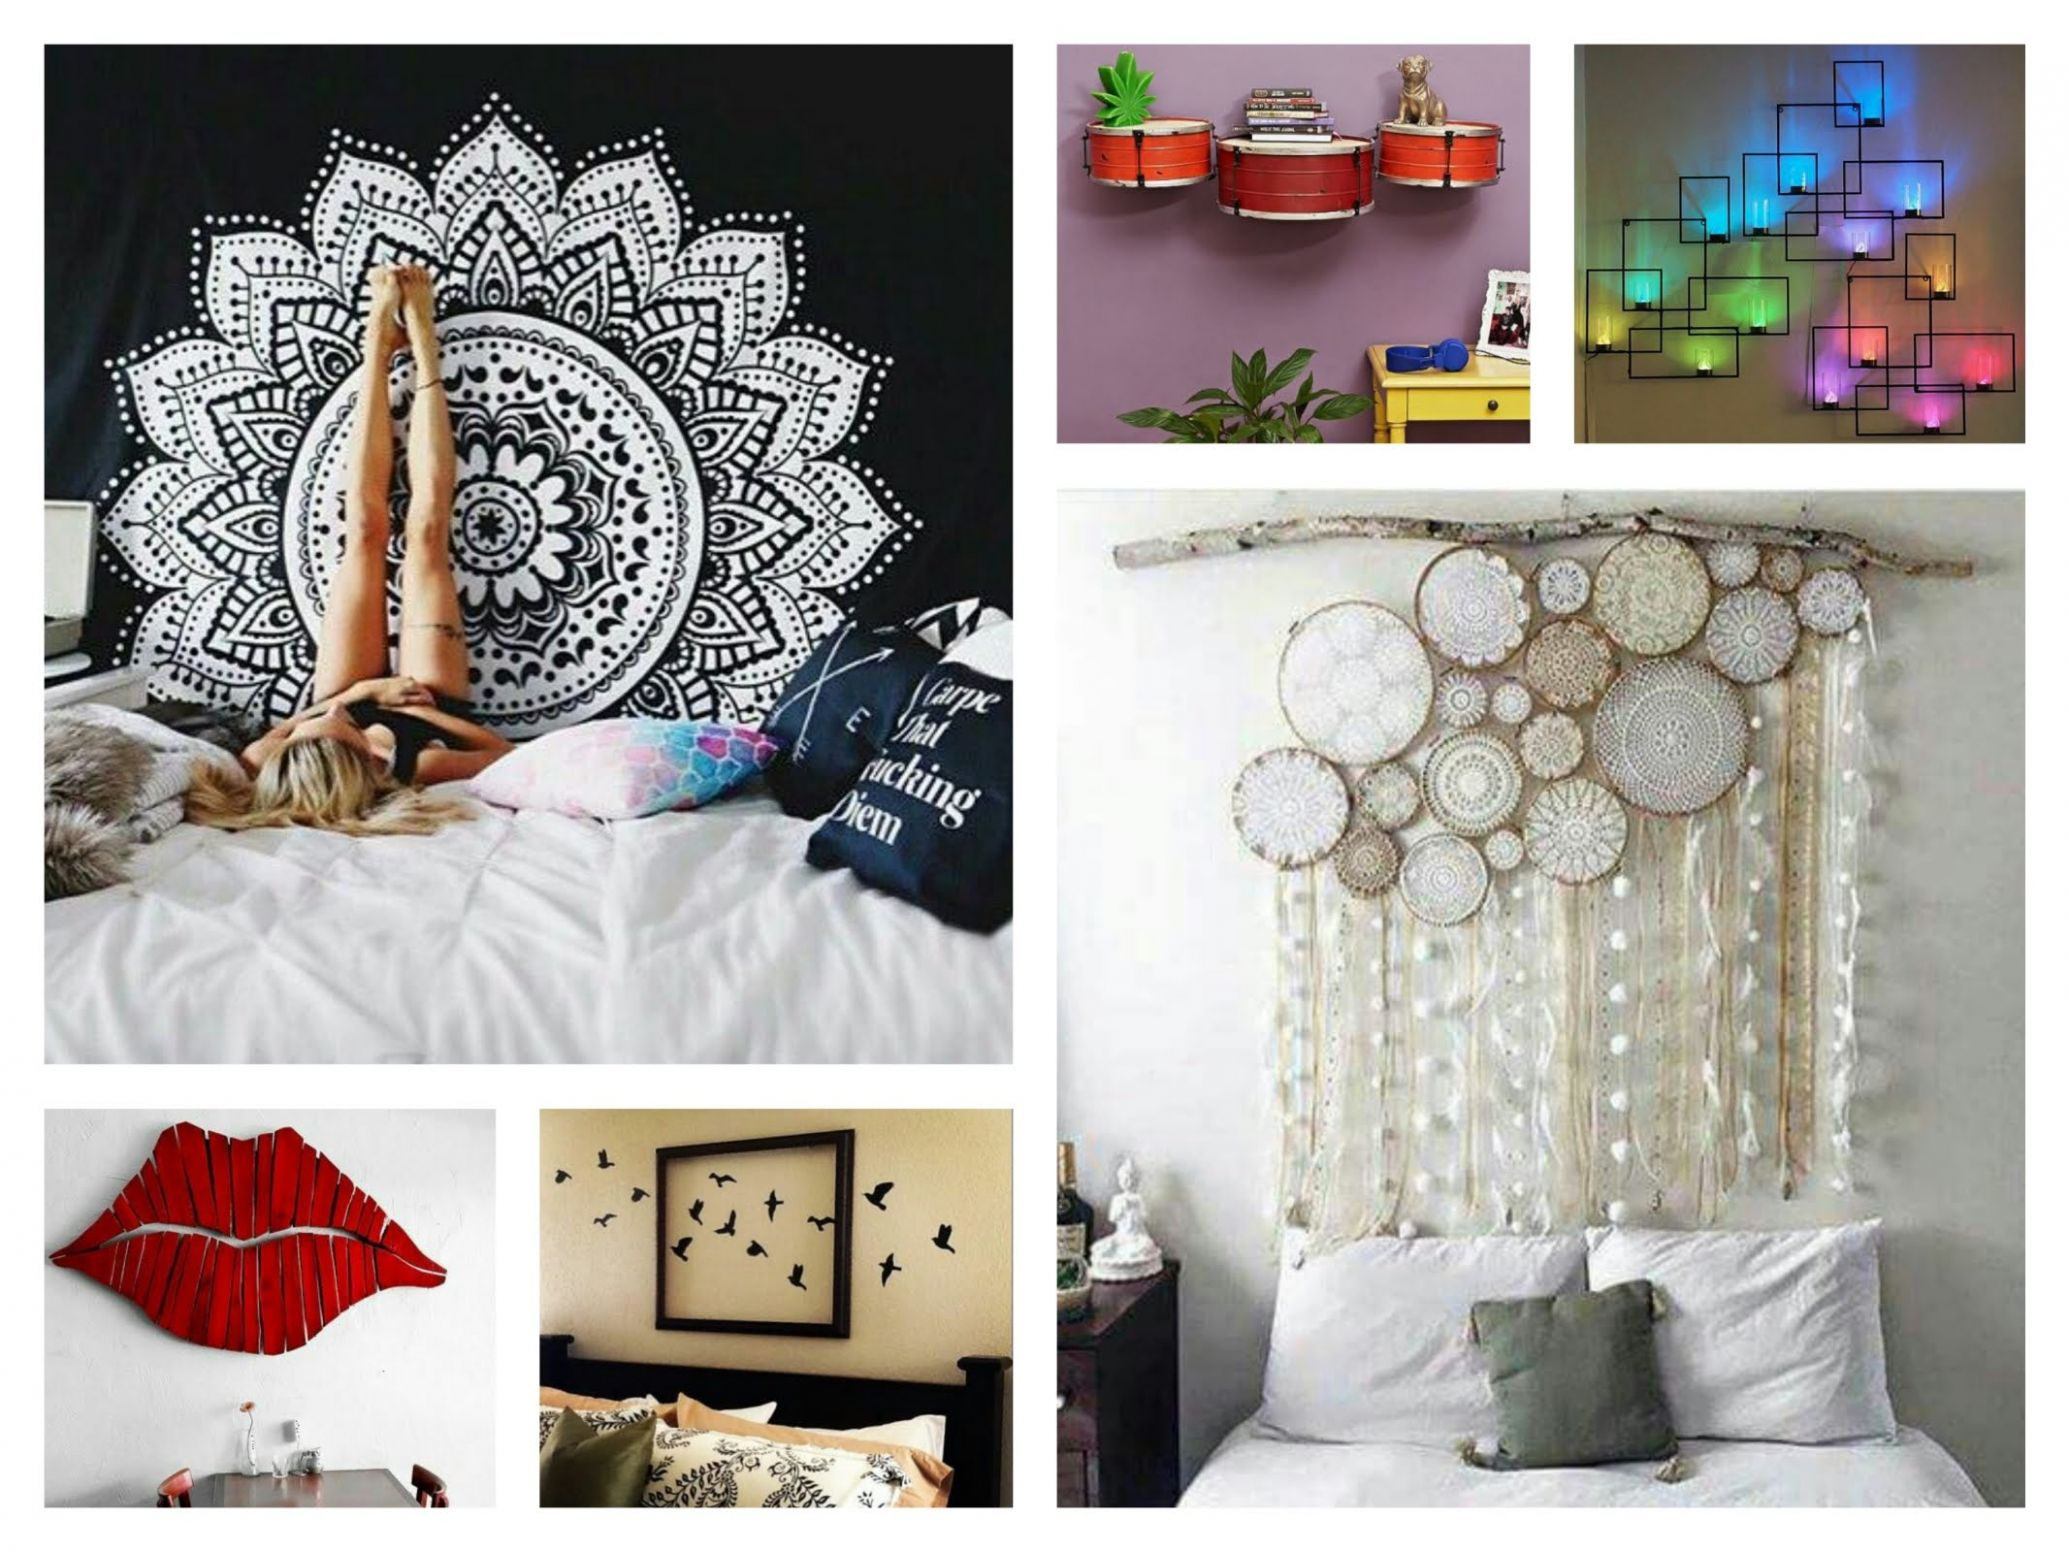 creative wall decor ideas diy room decorations youtube in creative ..